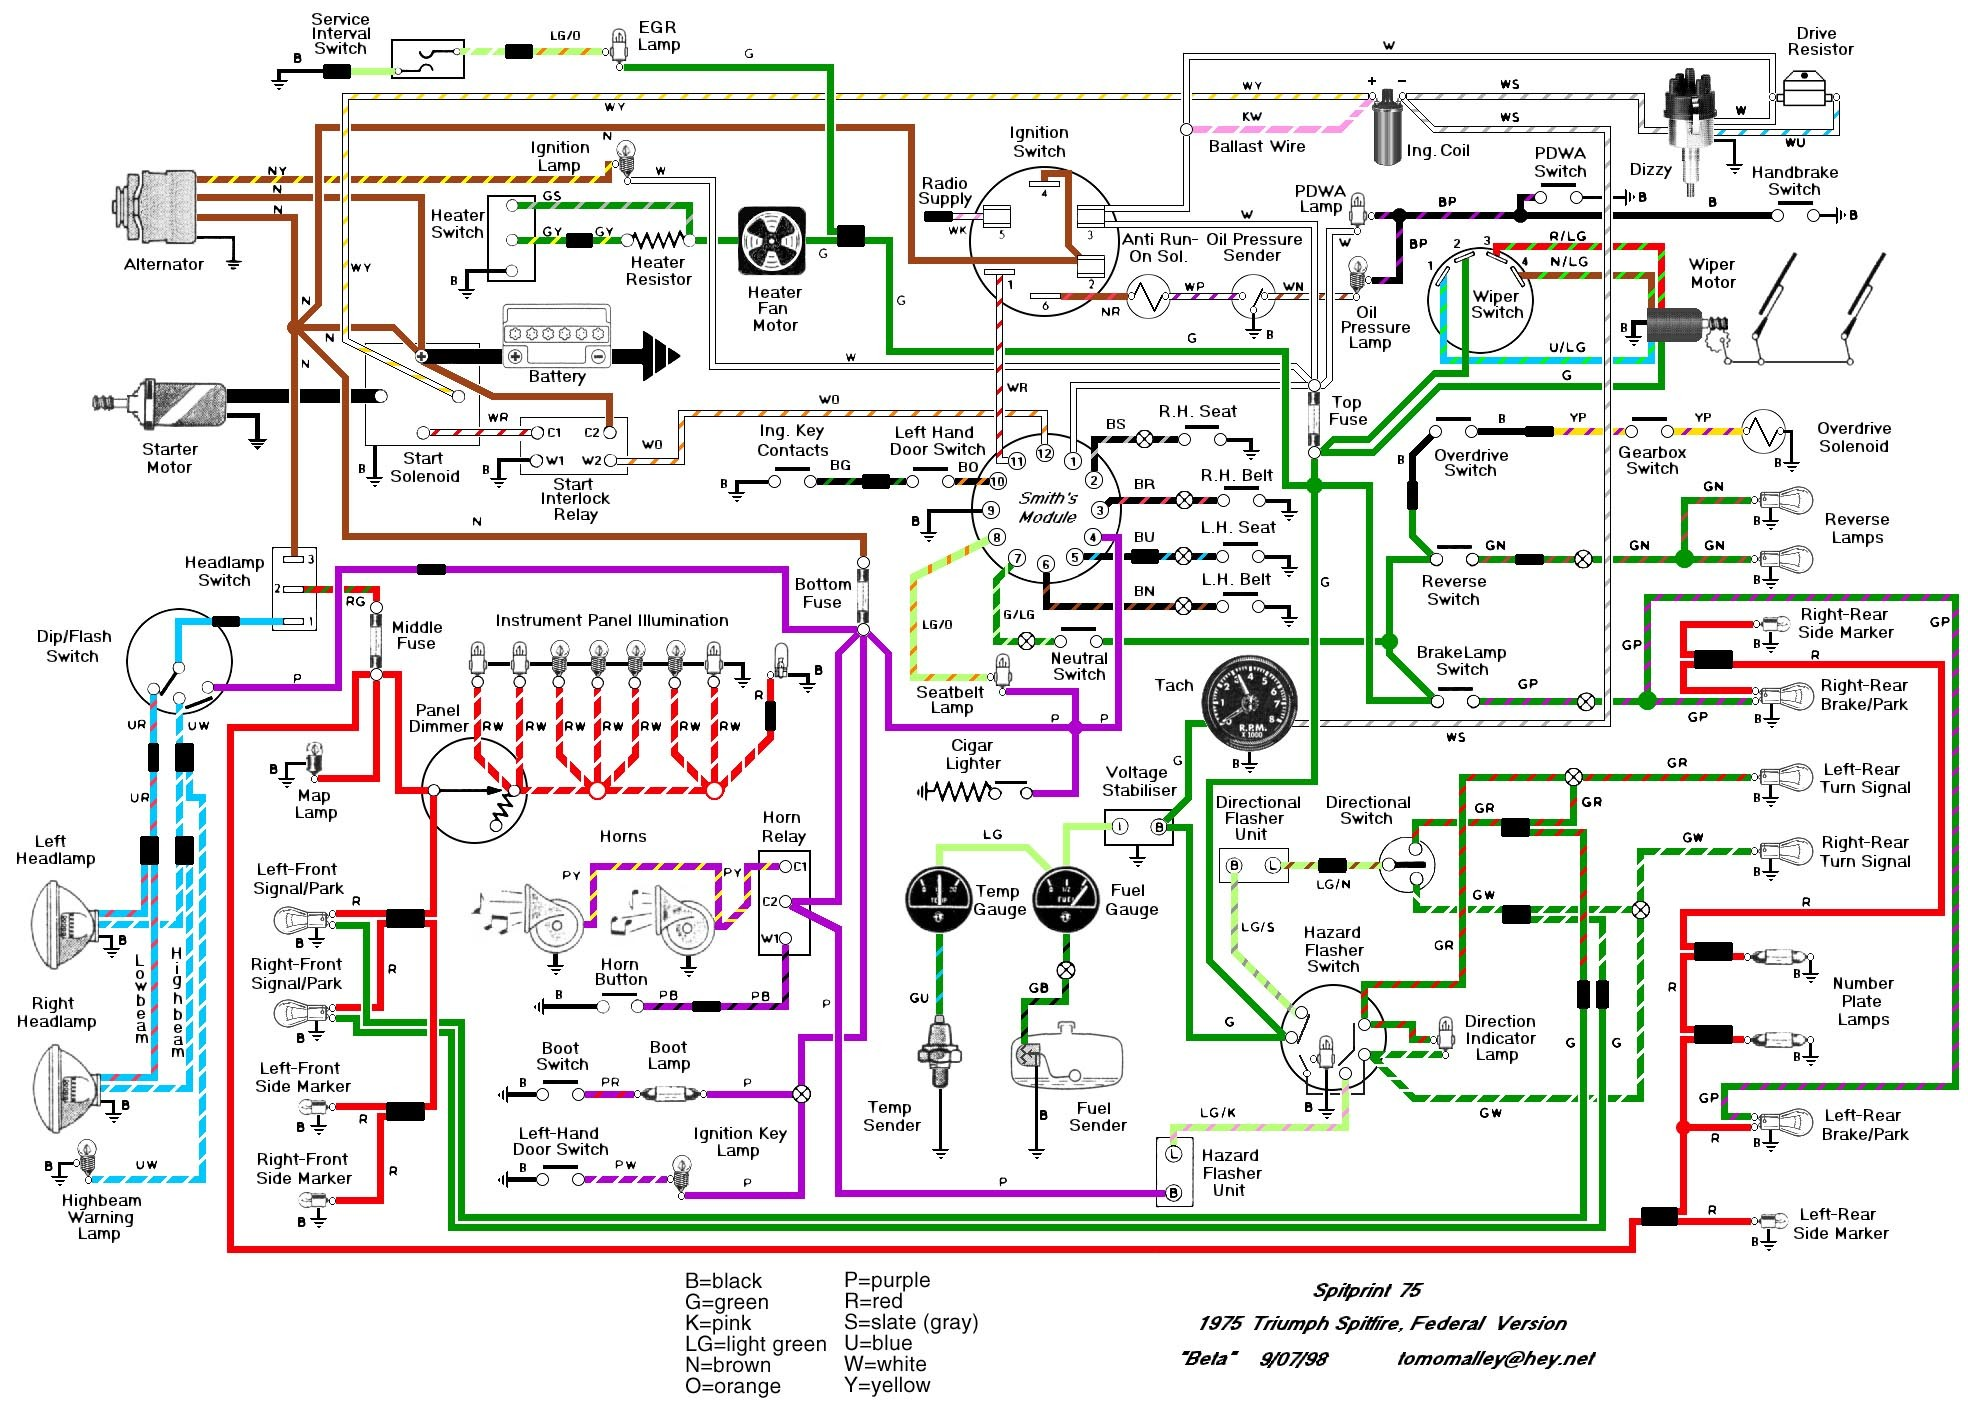 Car Electrical System Diagram Mgb Gt Wiring Diagram Wiring Diagram Of Car Electrical System Diagram Diesel Generator Control Panel Wiring Diagram